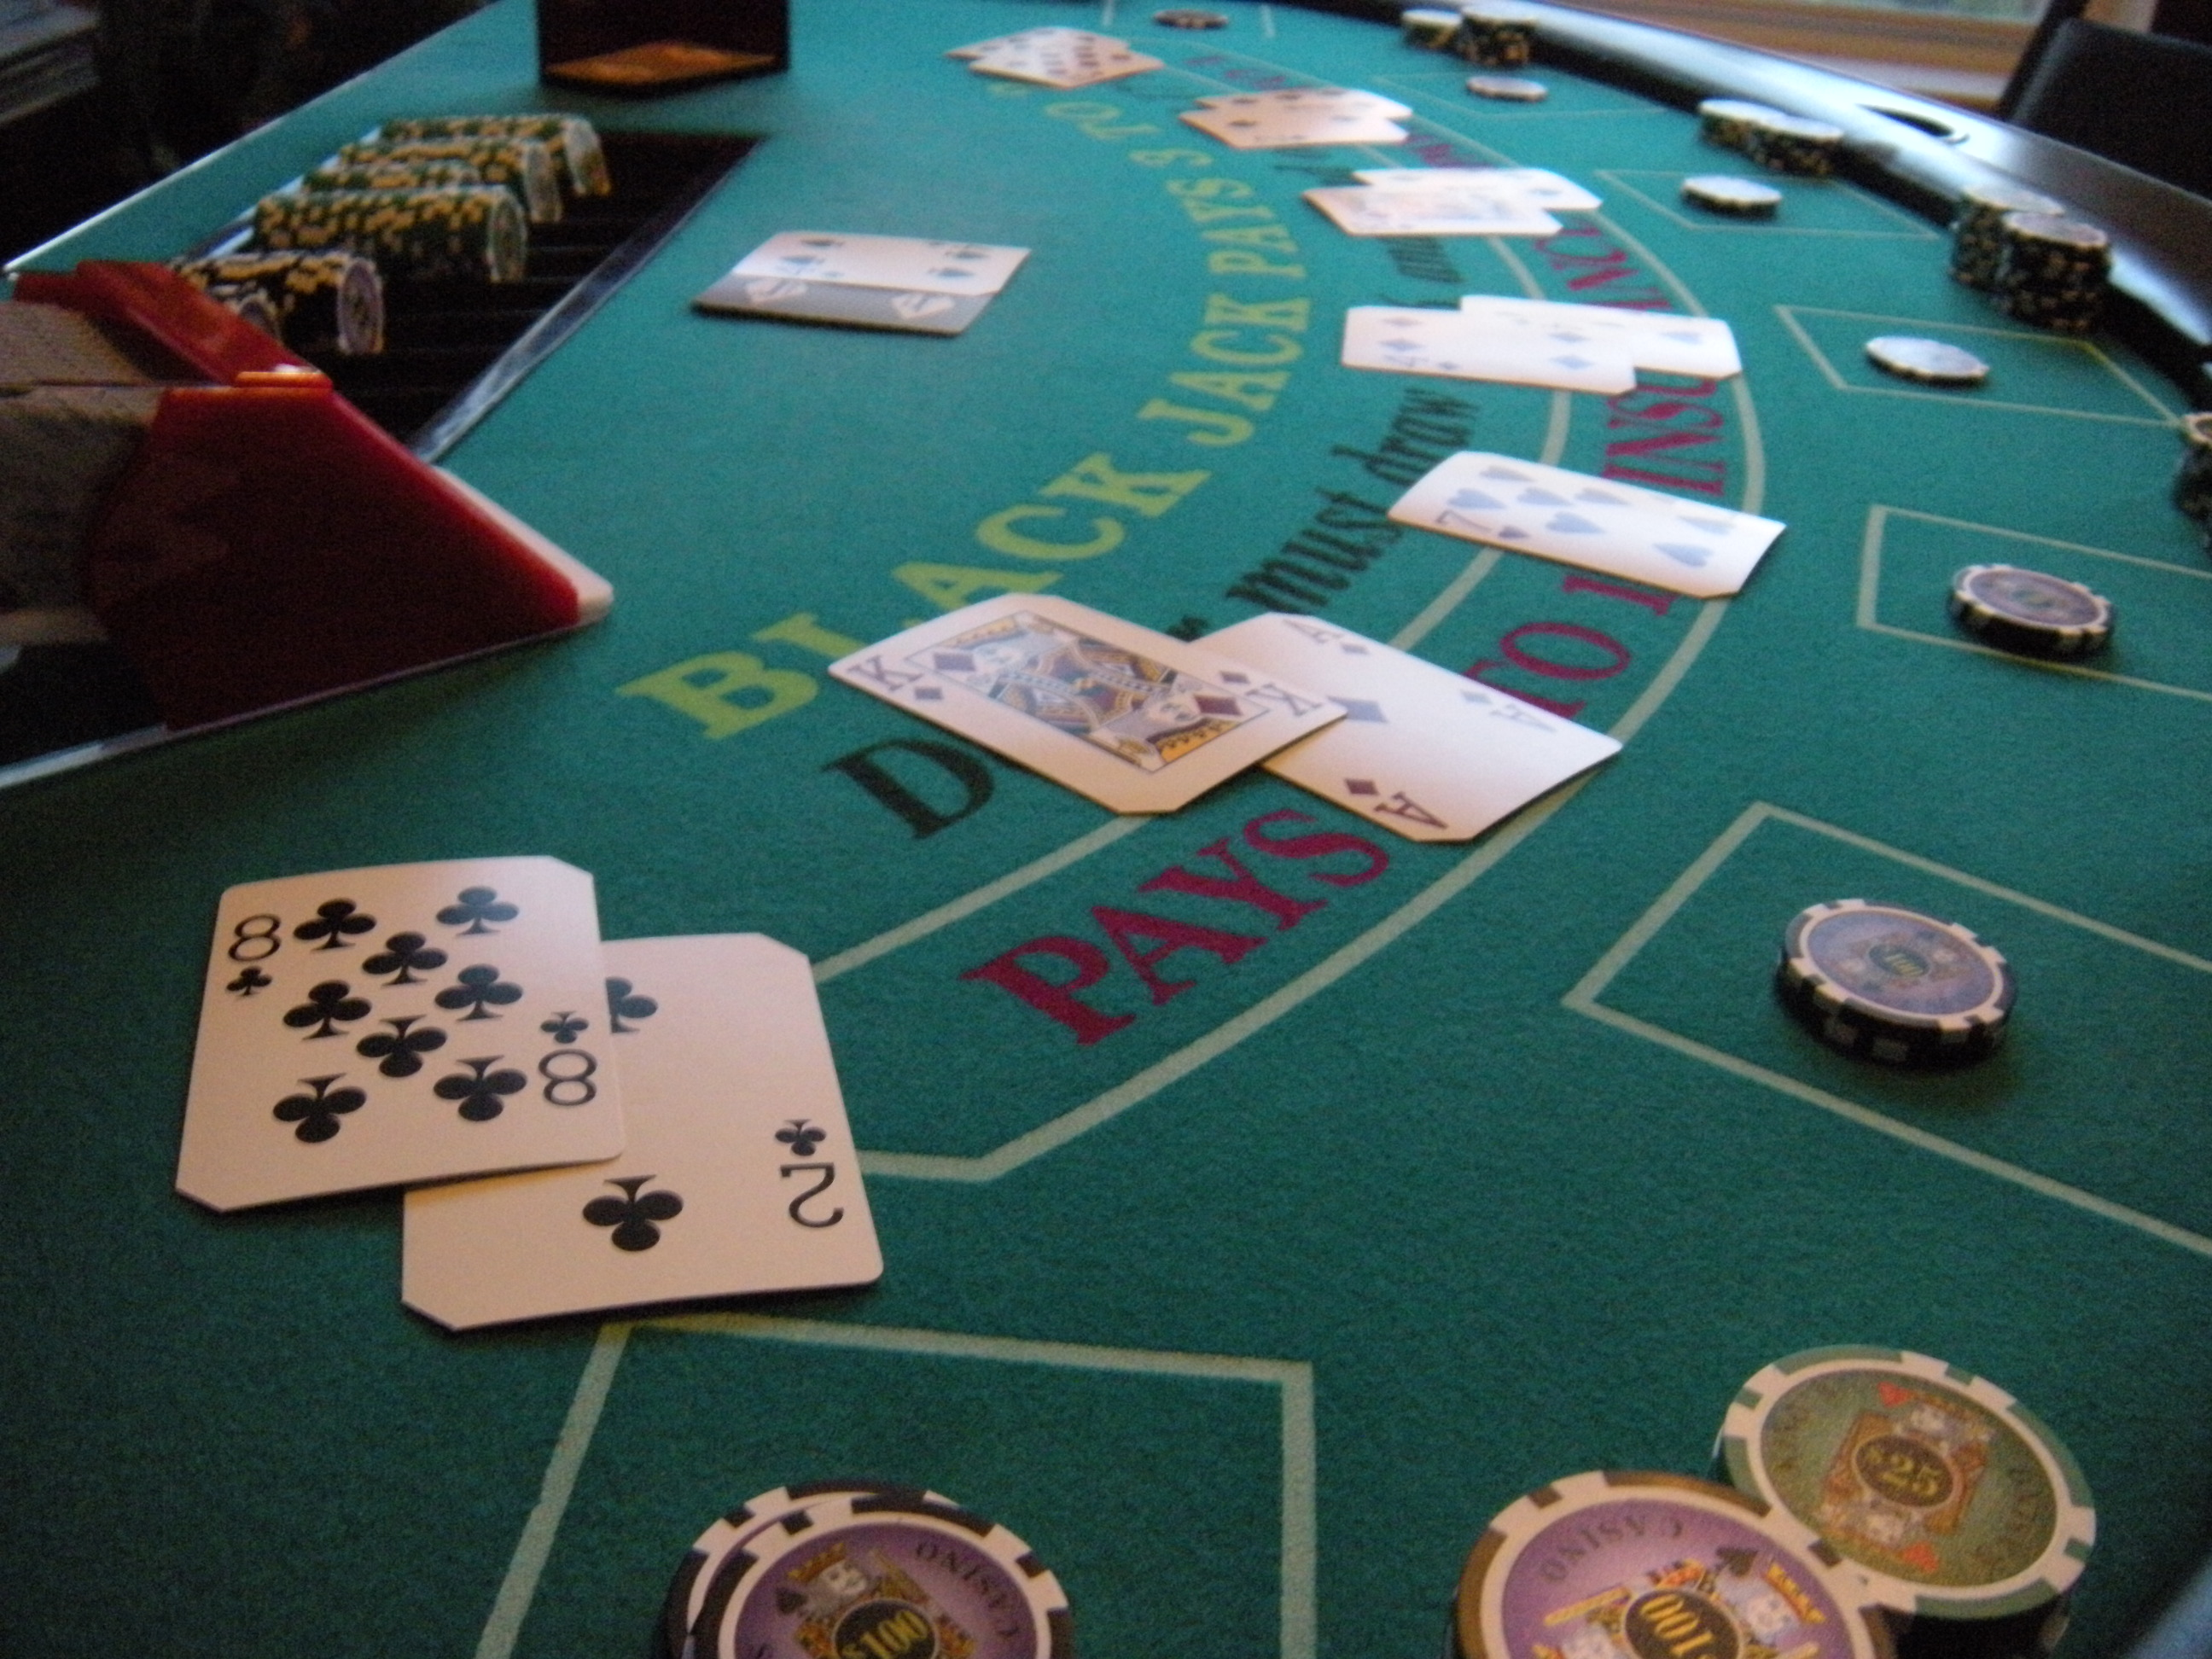 Blackjack in the casino casino net income